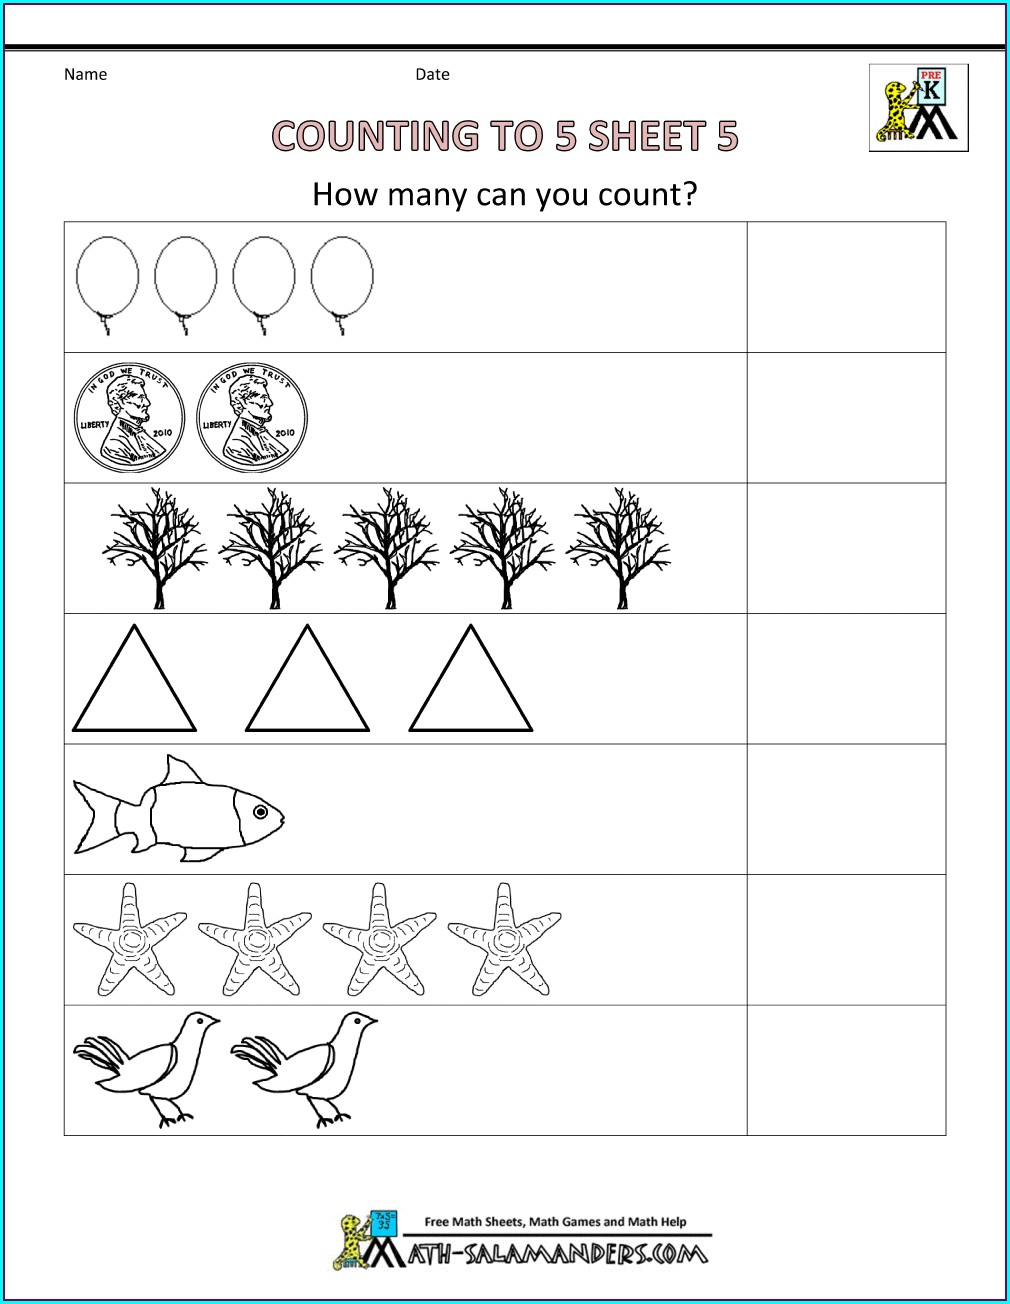 Printable Math Counting Games